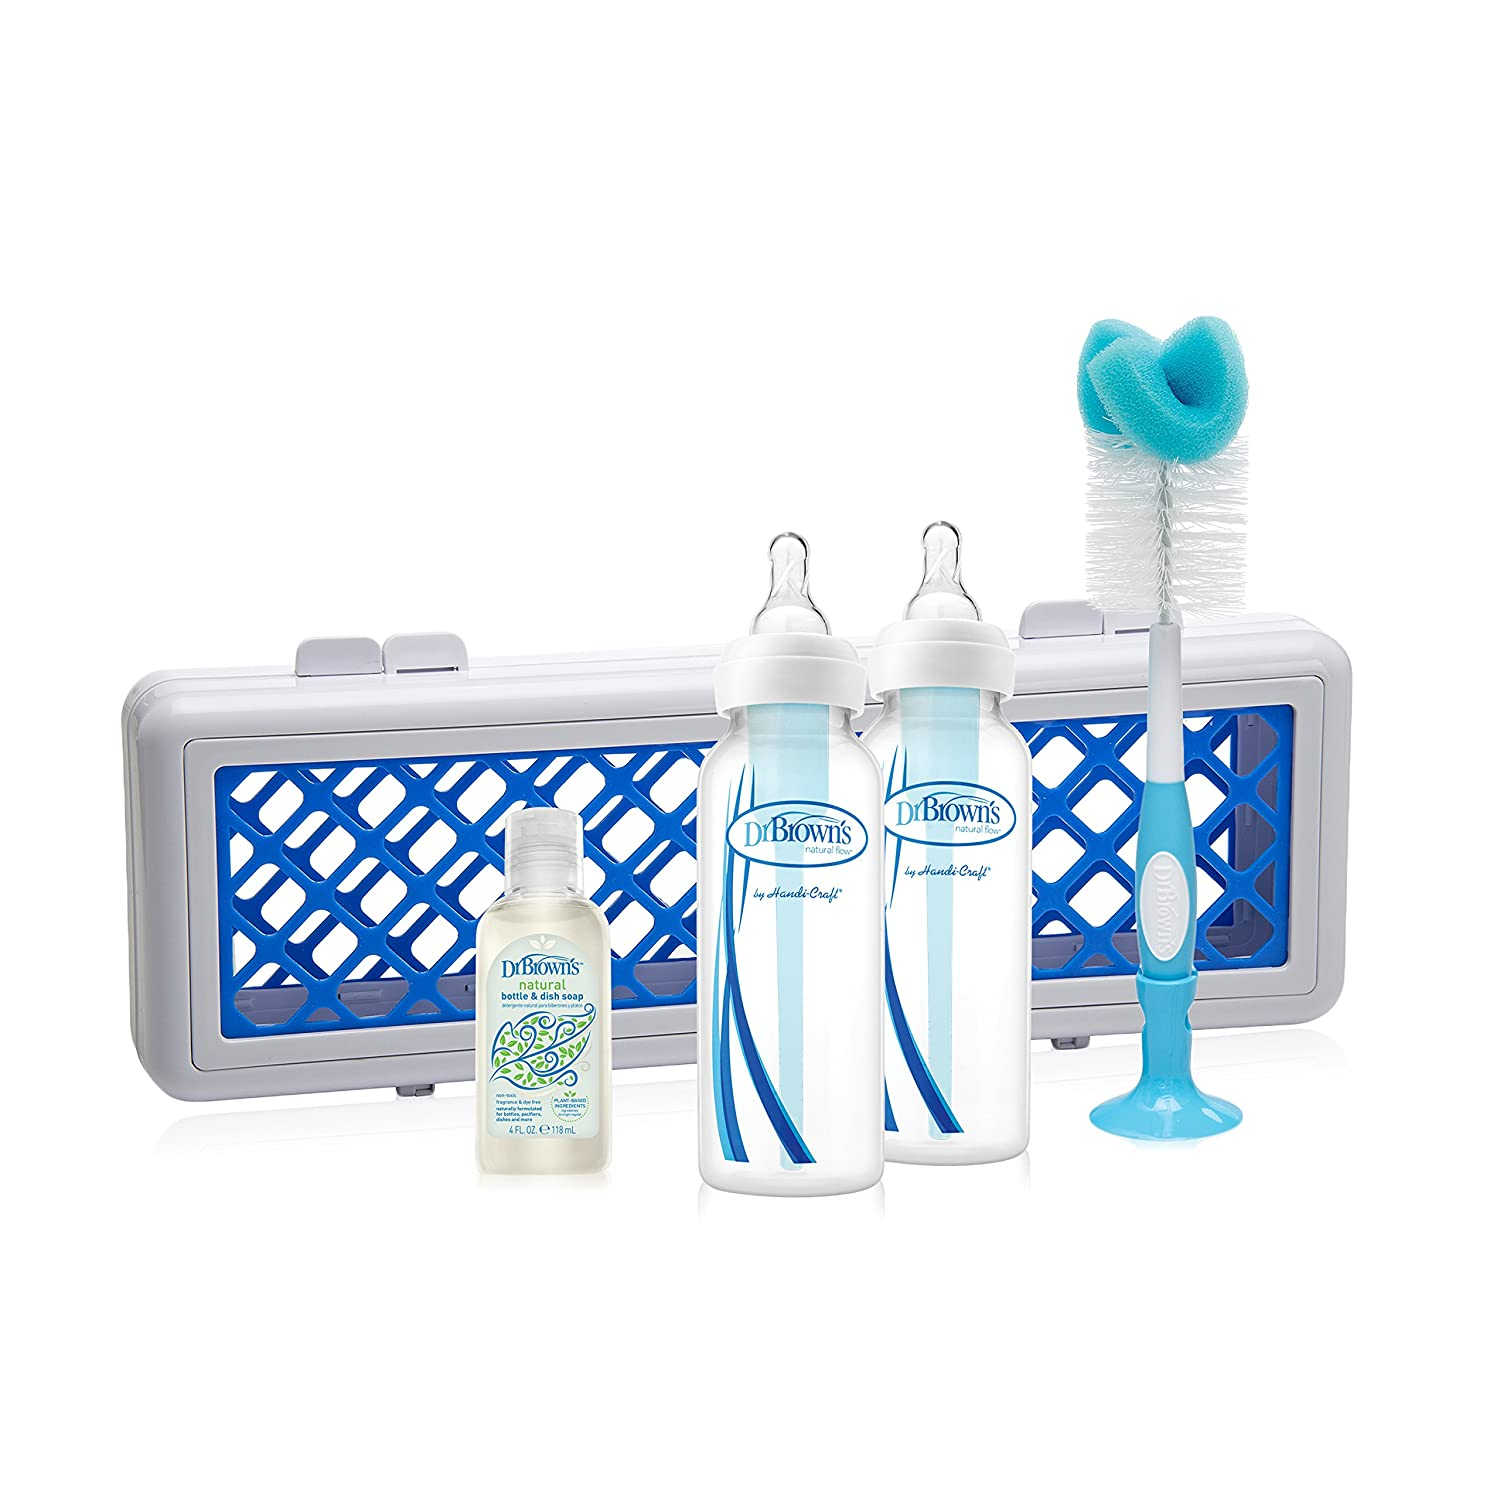 Dr. Browns Clean Bottle Set